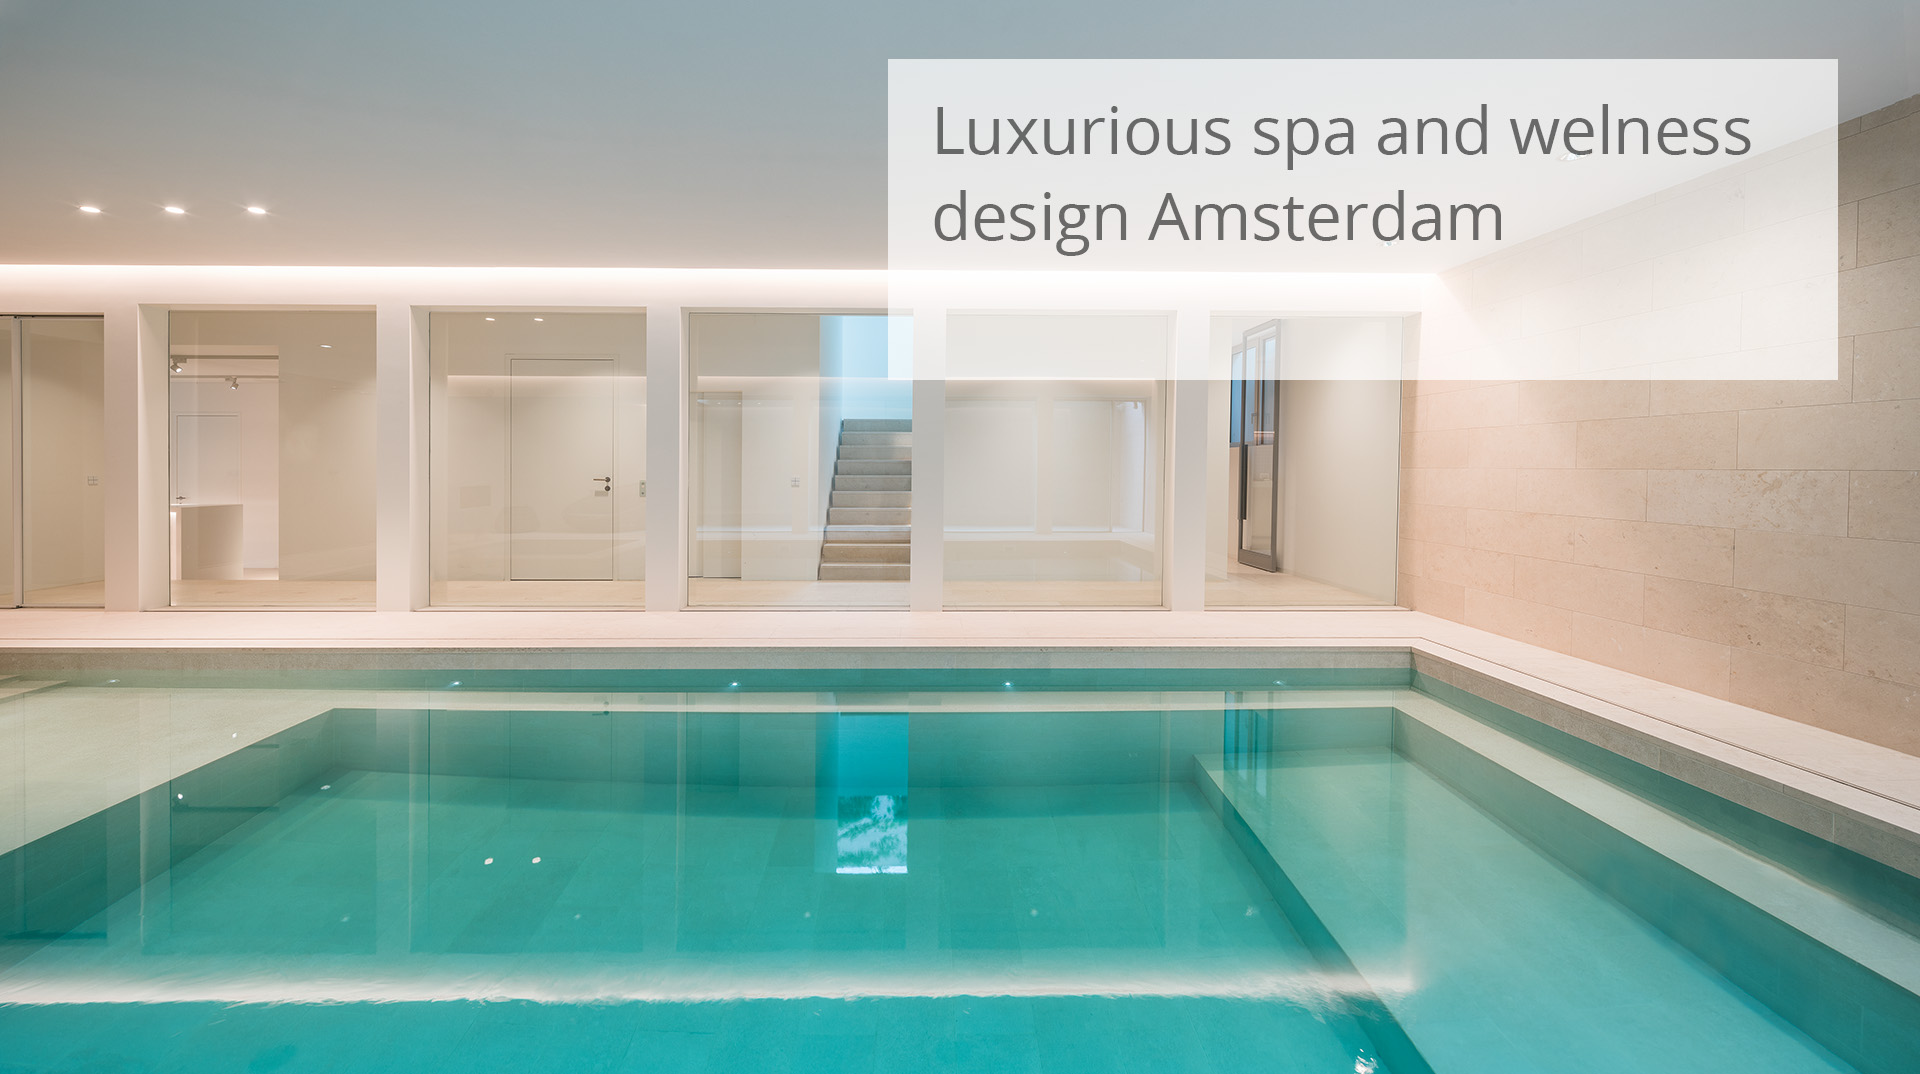 Amsterdam spa and wellness